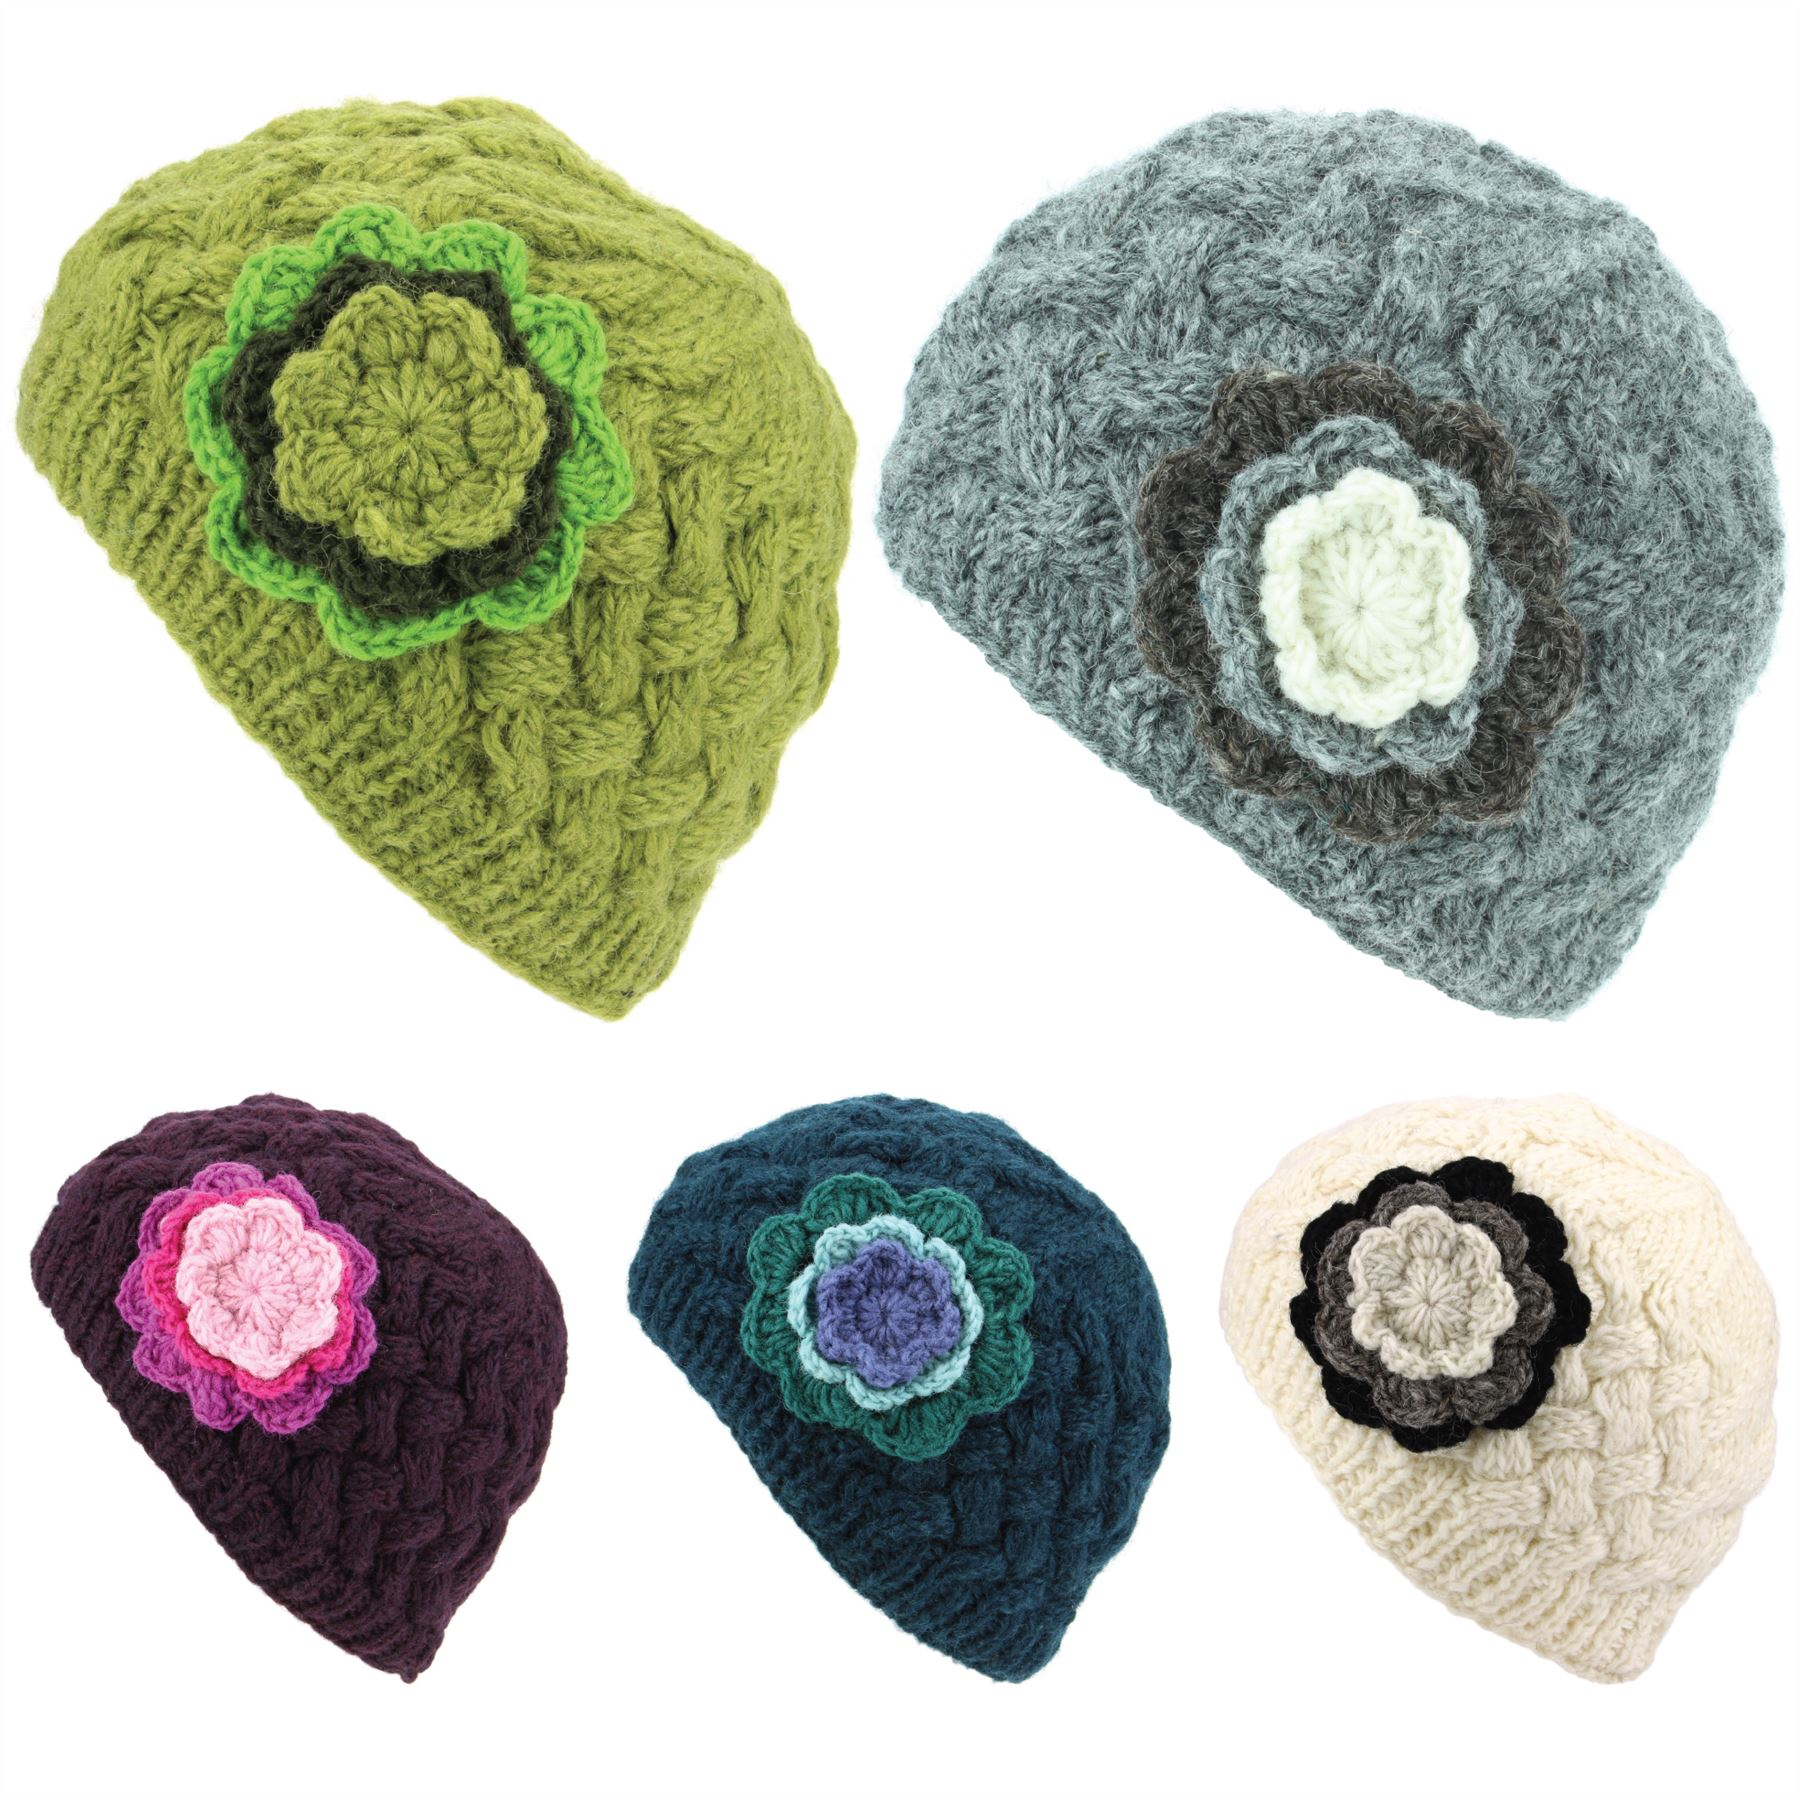 a7135cc802e Details about Wool Knit Beanie Hat Ladies Women Warm Winter Cable Knitted  Flower Lined